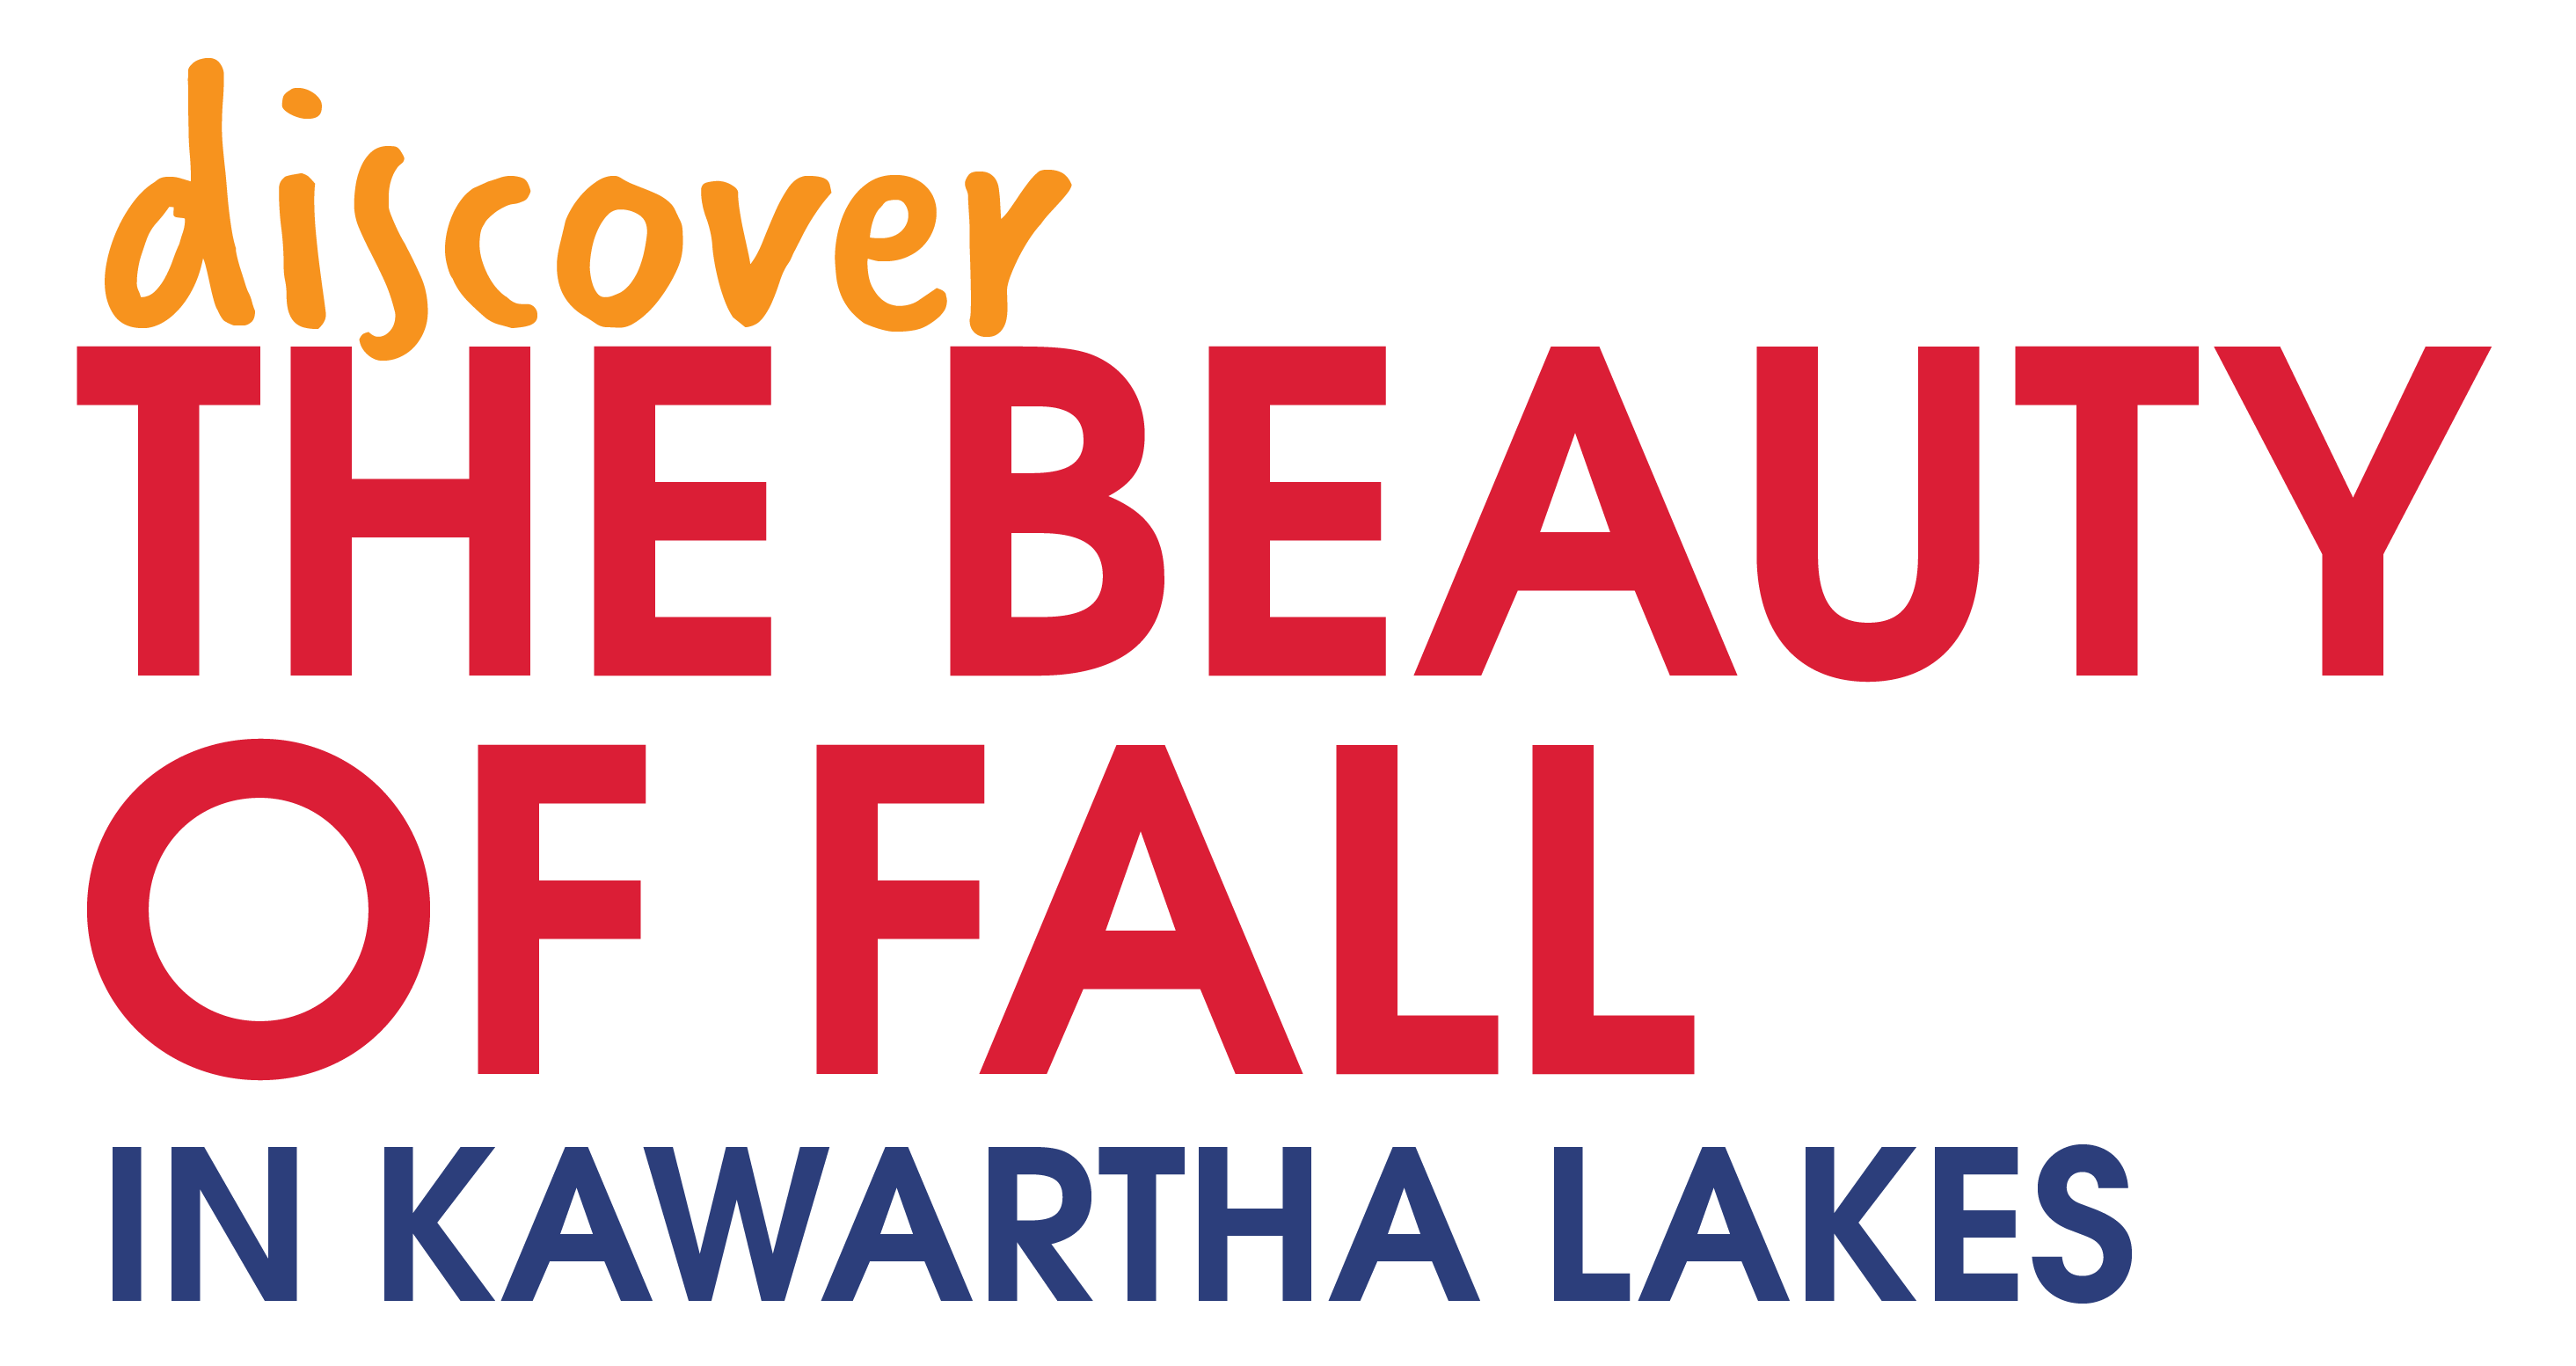 Discover the beauty of Fall in Kawartha Lakes